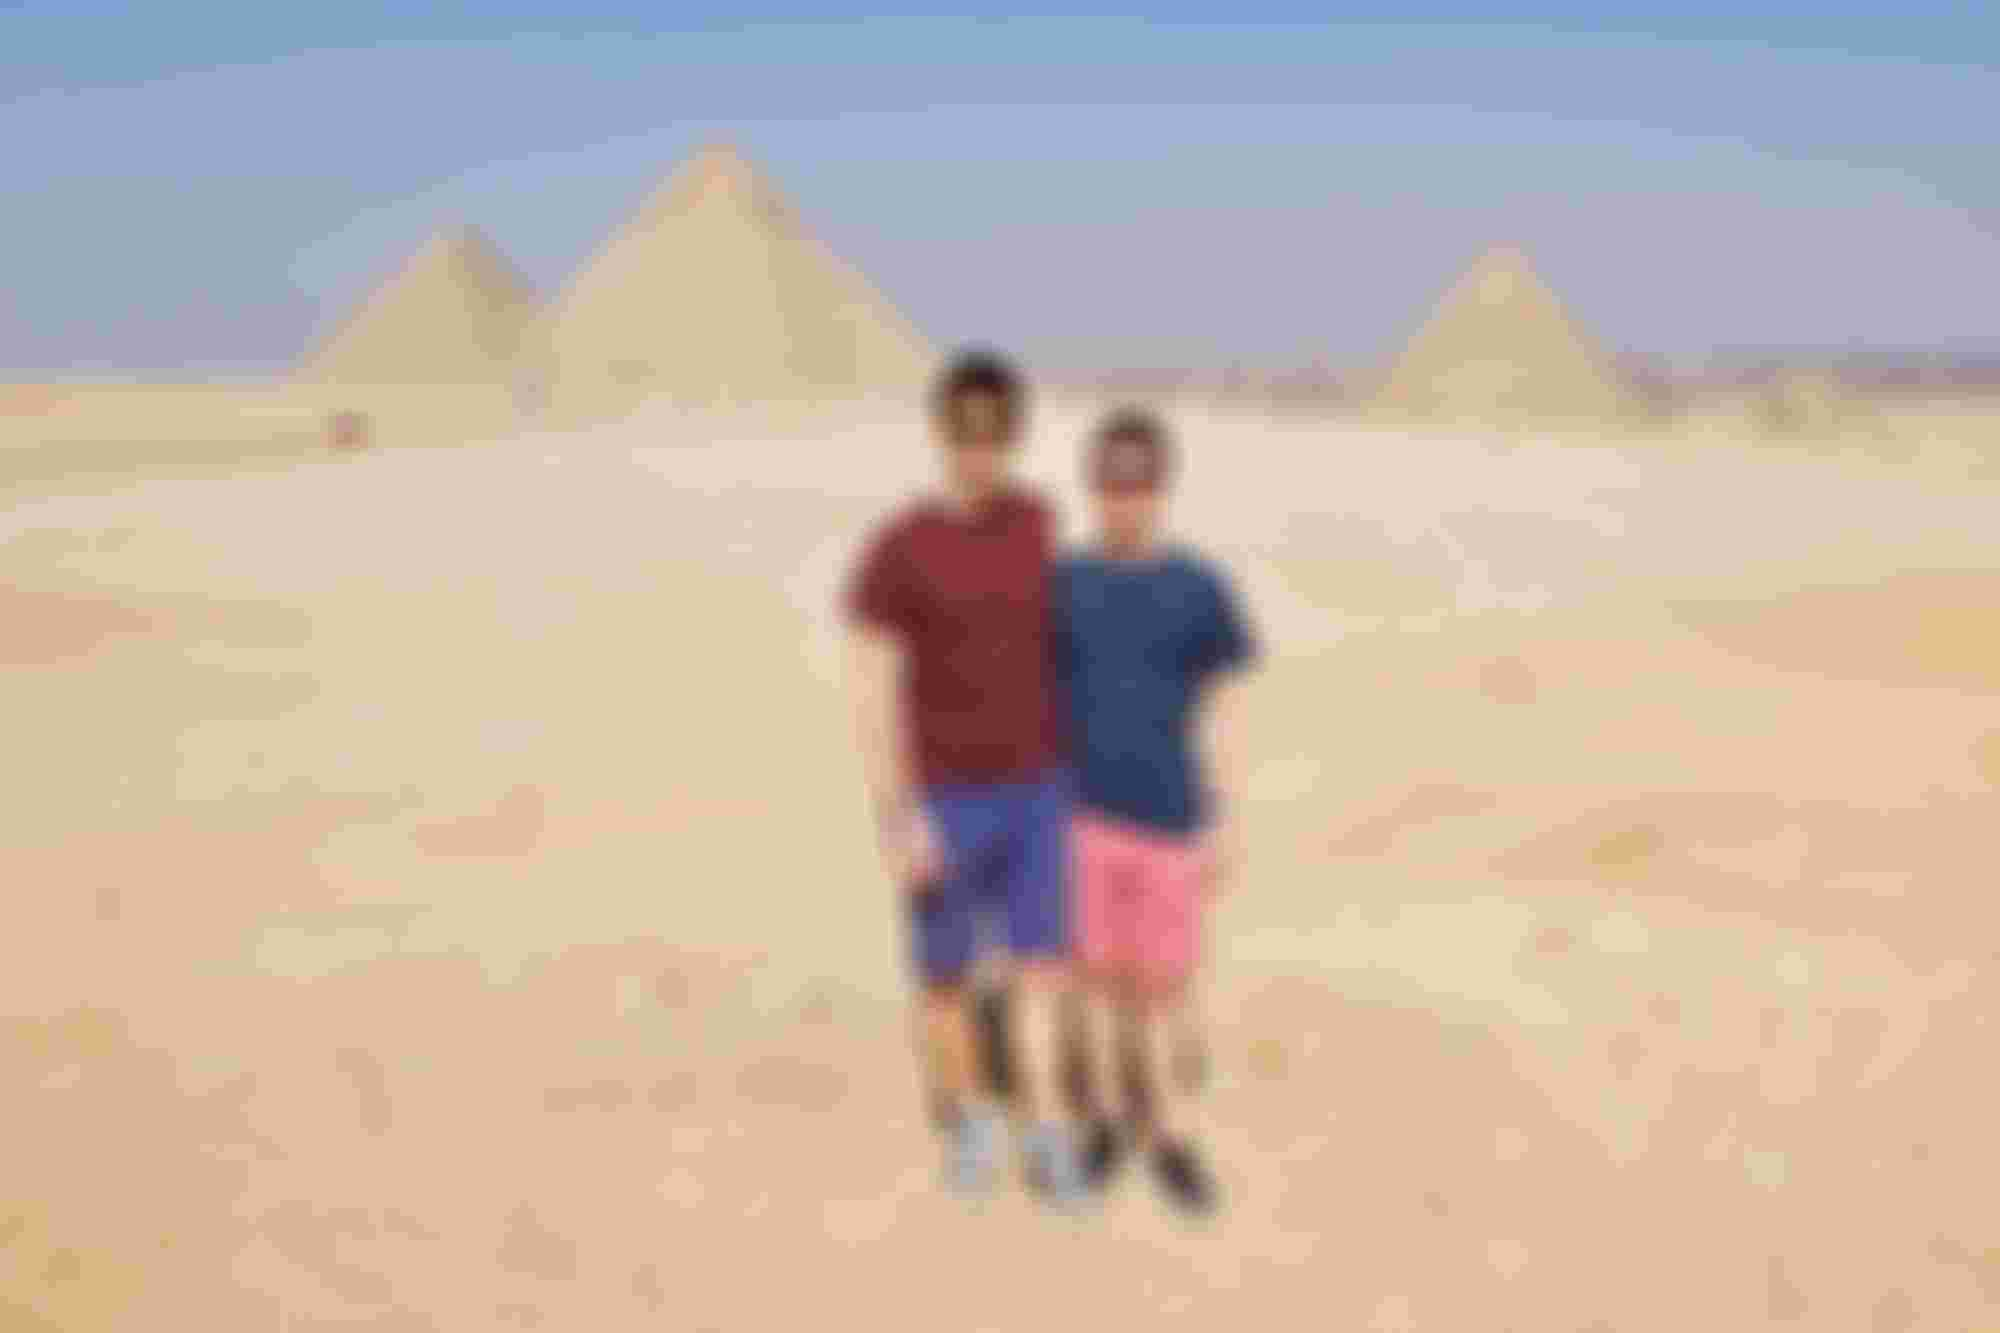 I'm pretty sure we're the only two people in all of Egypt that were wearing shorts.